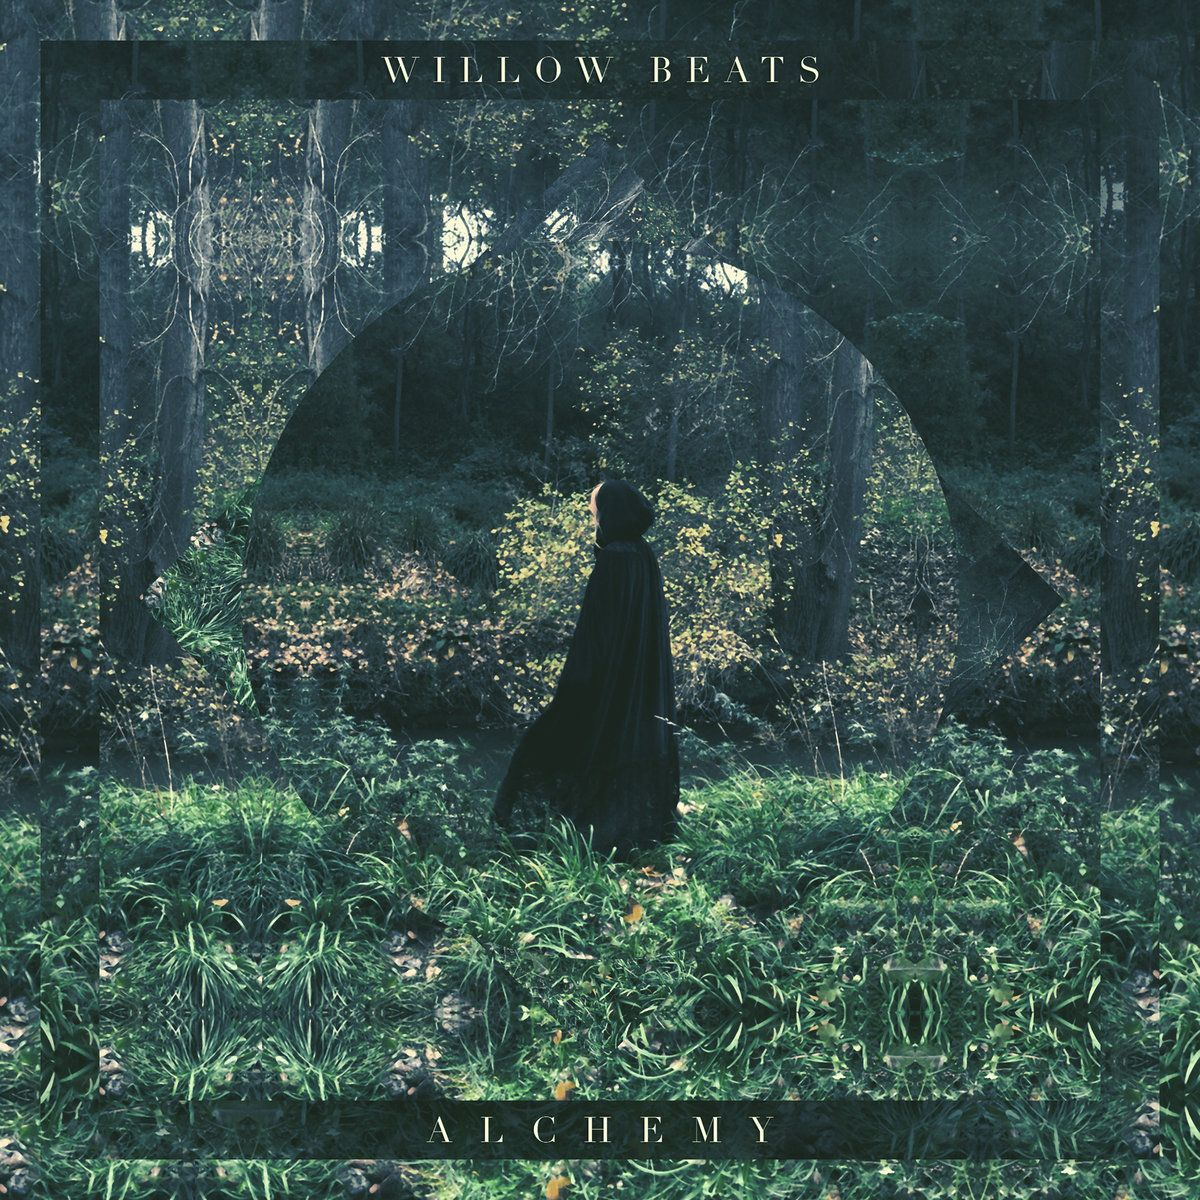 willow beats blue album cover - Google Search